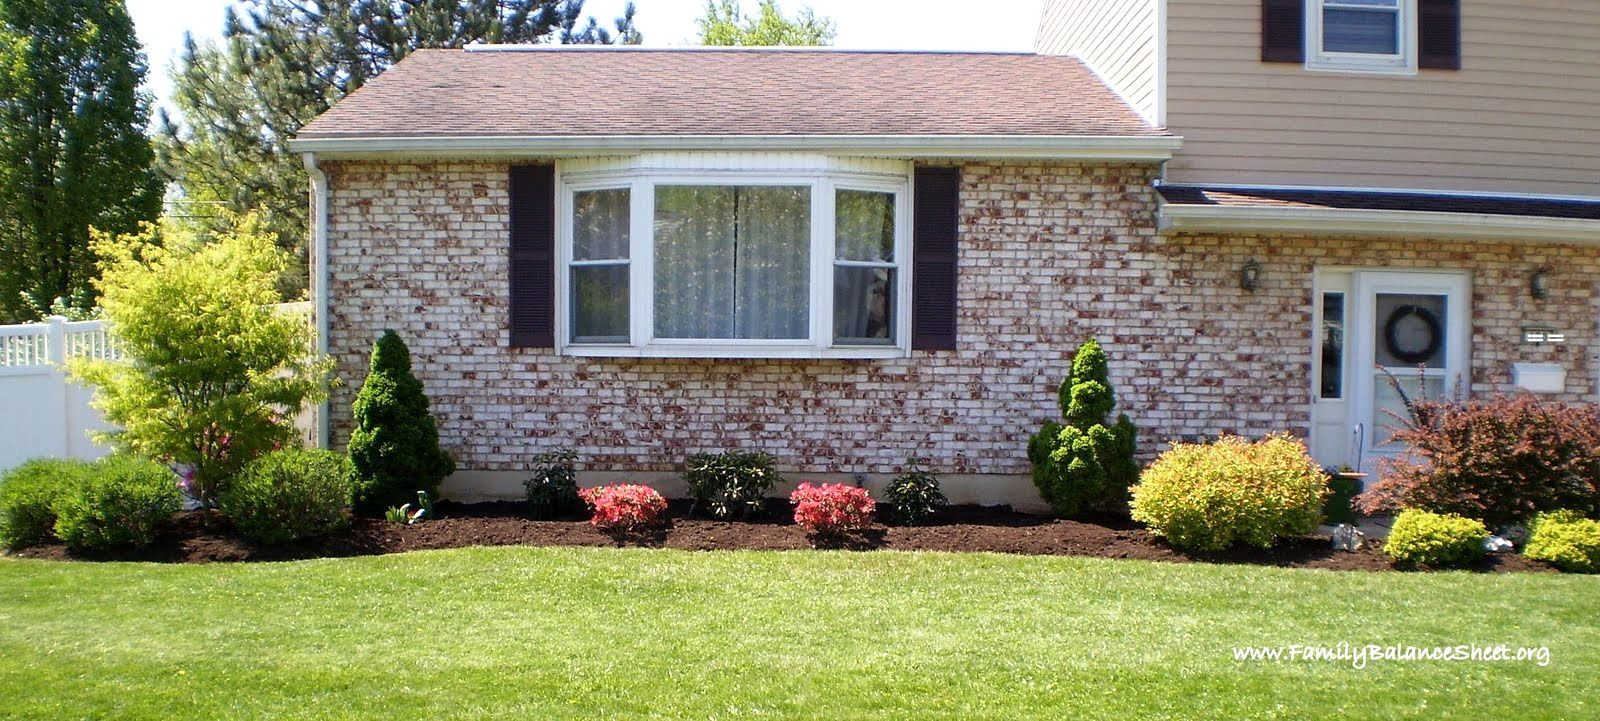 Landscaping ideas front yard ranch style home front yard Small front lawn garden ideas